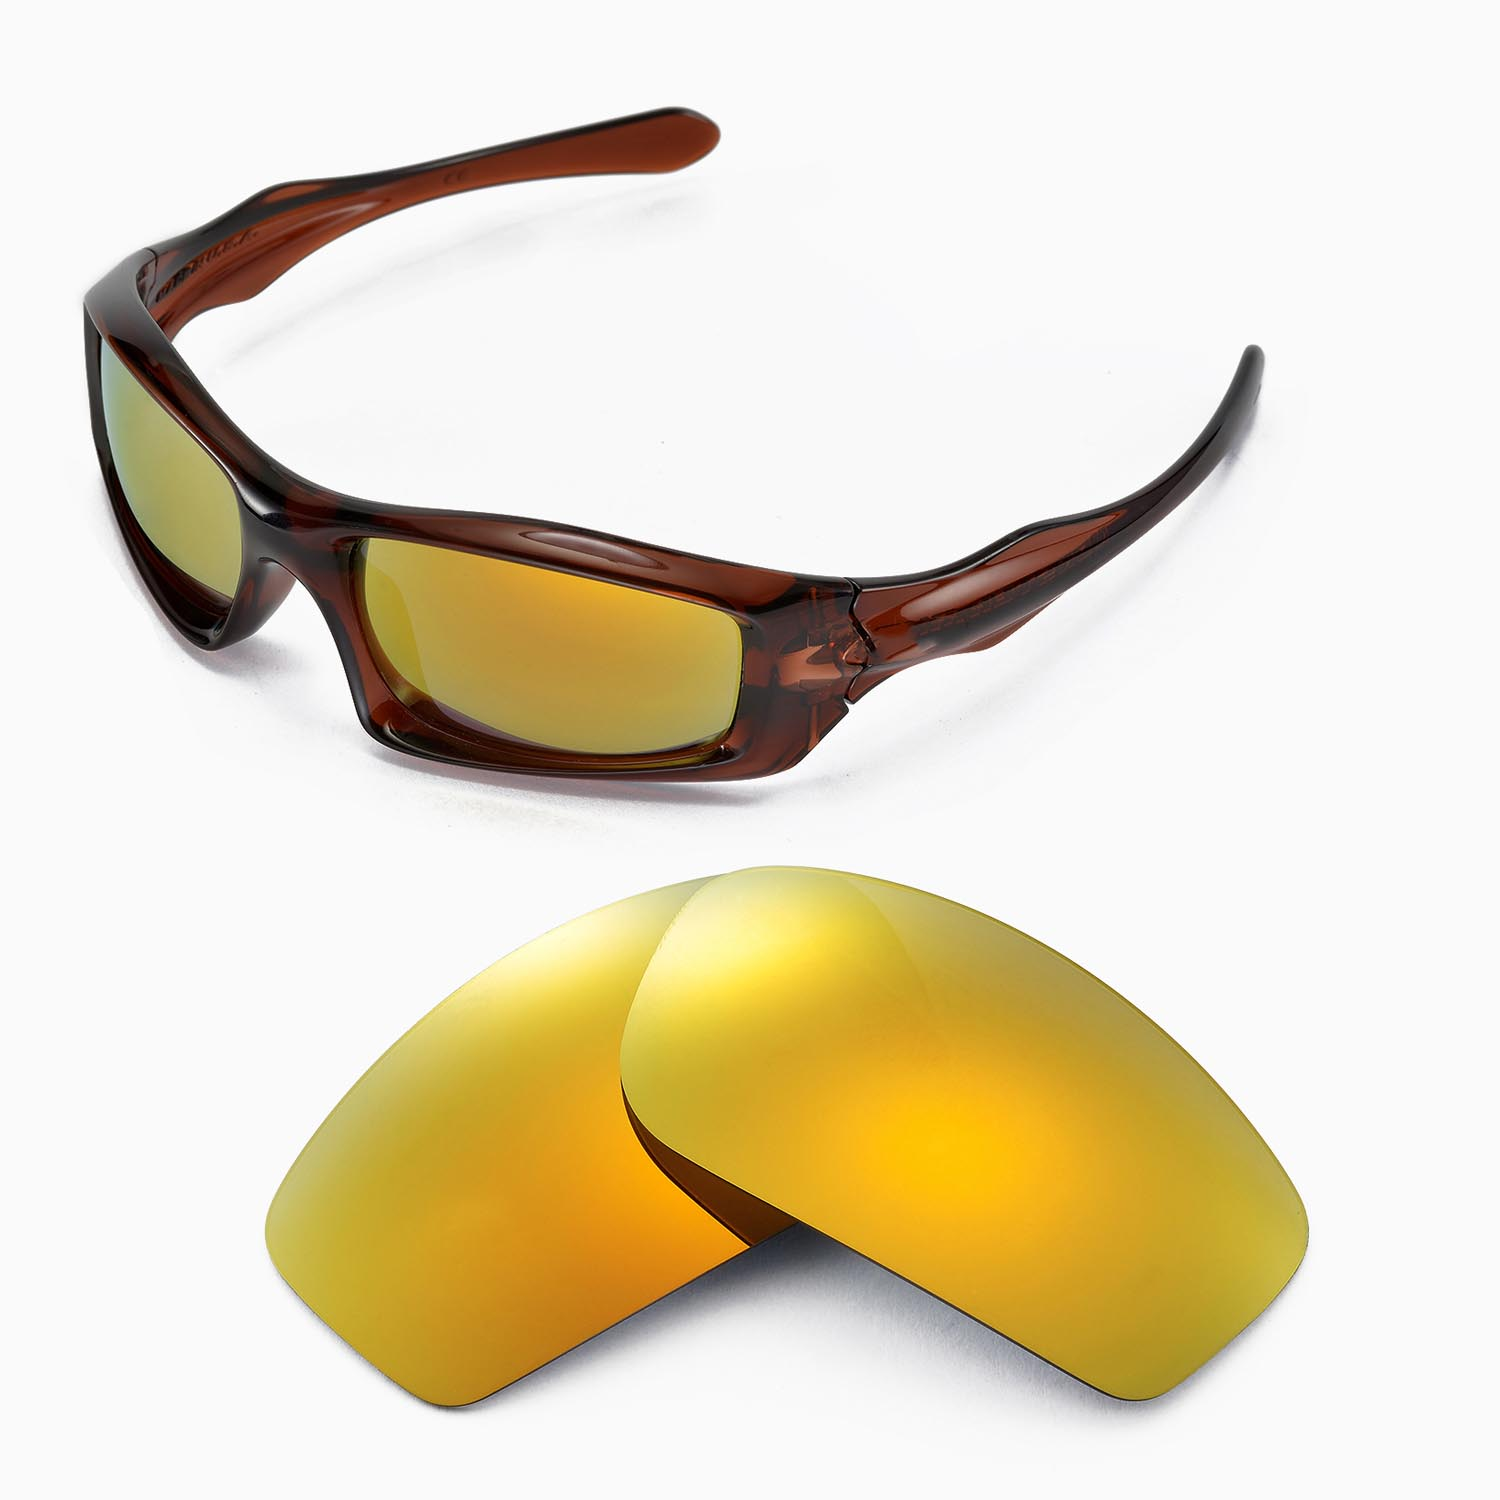 2f58f8f2e6 Details about New WL Polarized 24K Gold Replacement Lenses For Oakley  Monster Pup Sunglasses